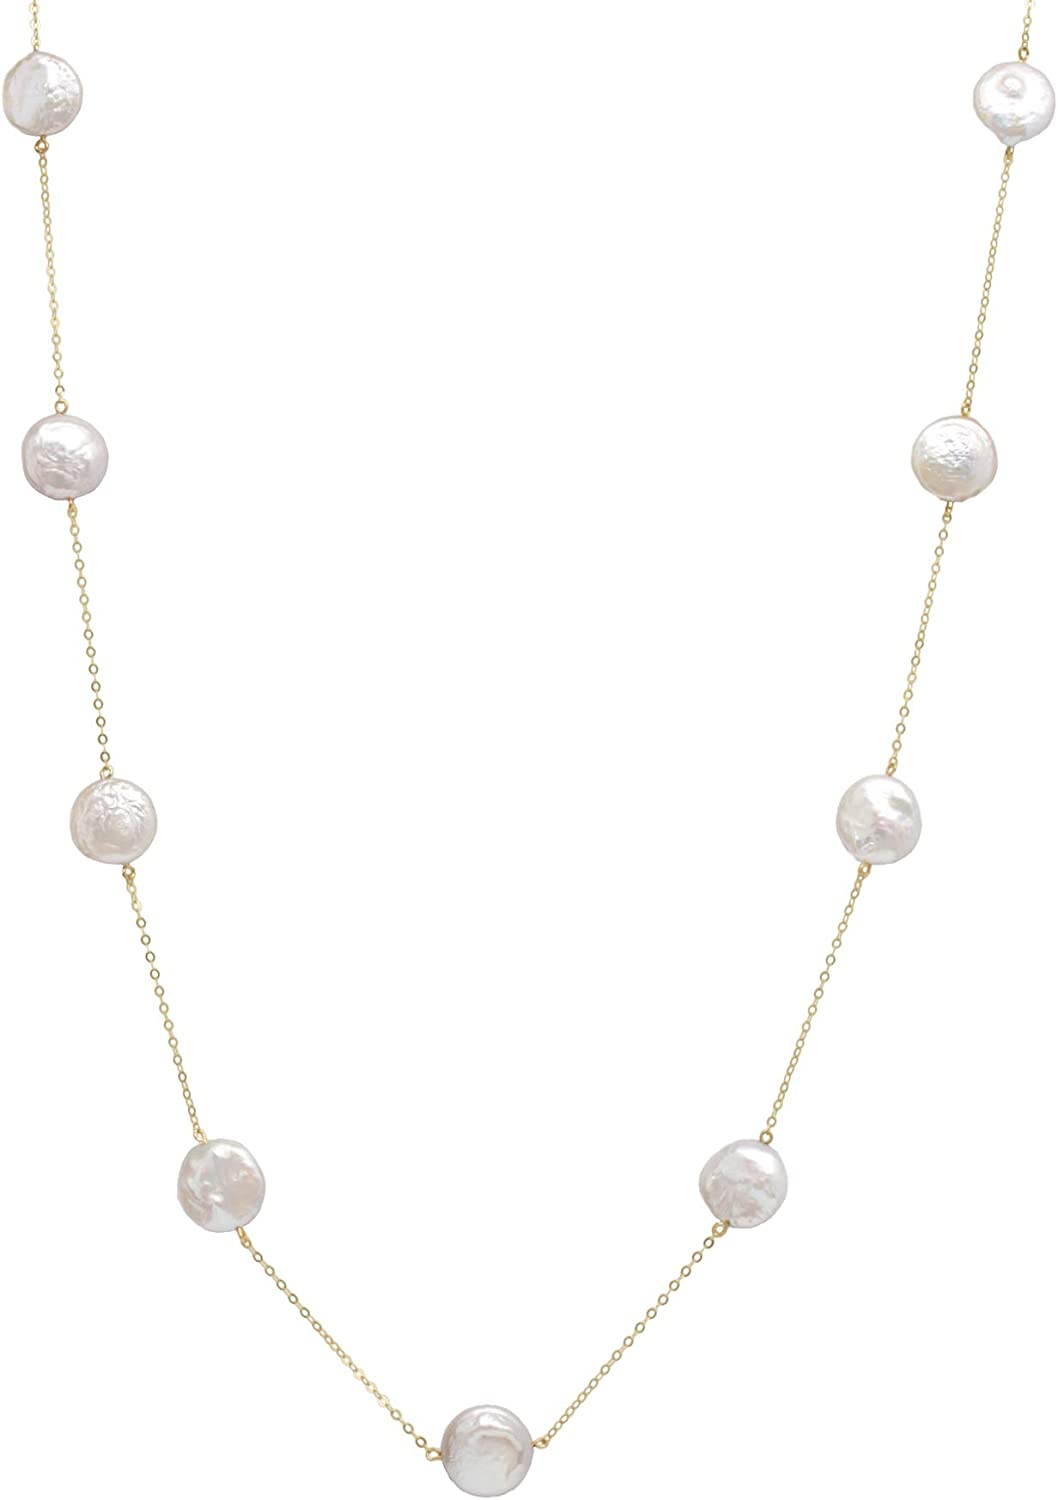 14K Yellow Gold 12mm Coin Cultured Freshwater Pearl Tin Cup Chain Necklace Jewelry for Women 20